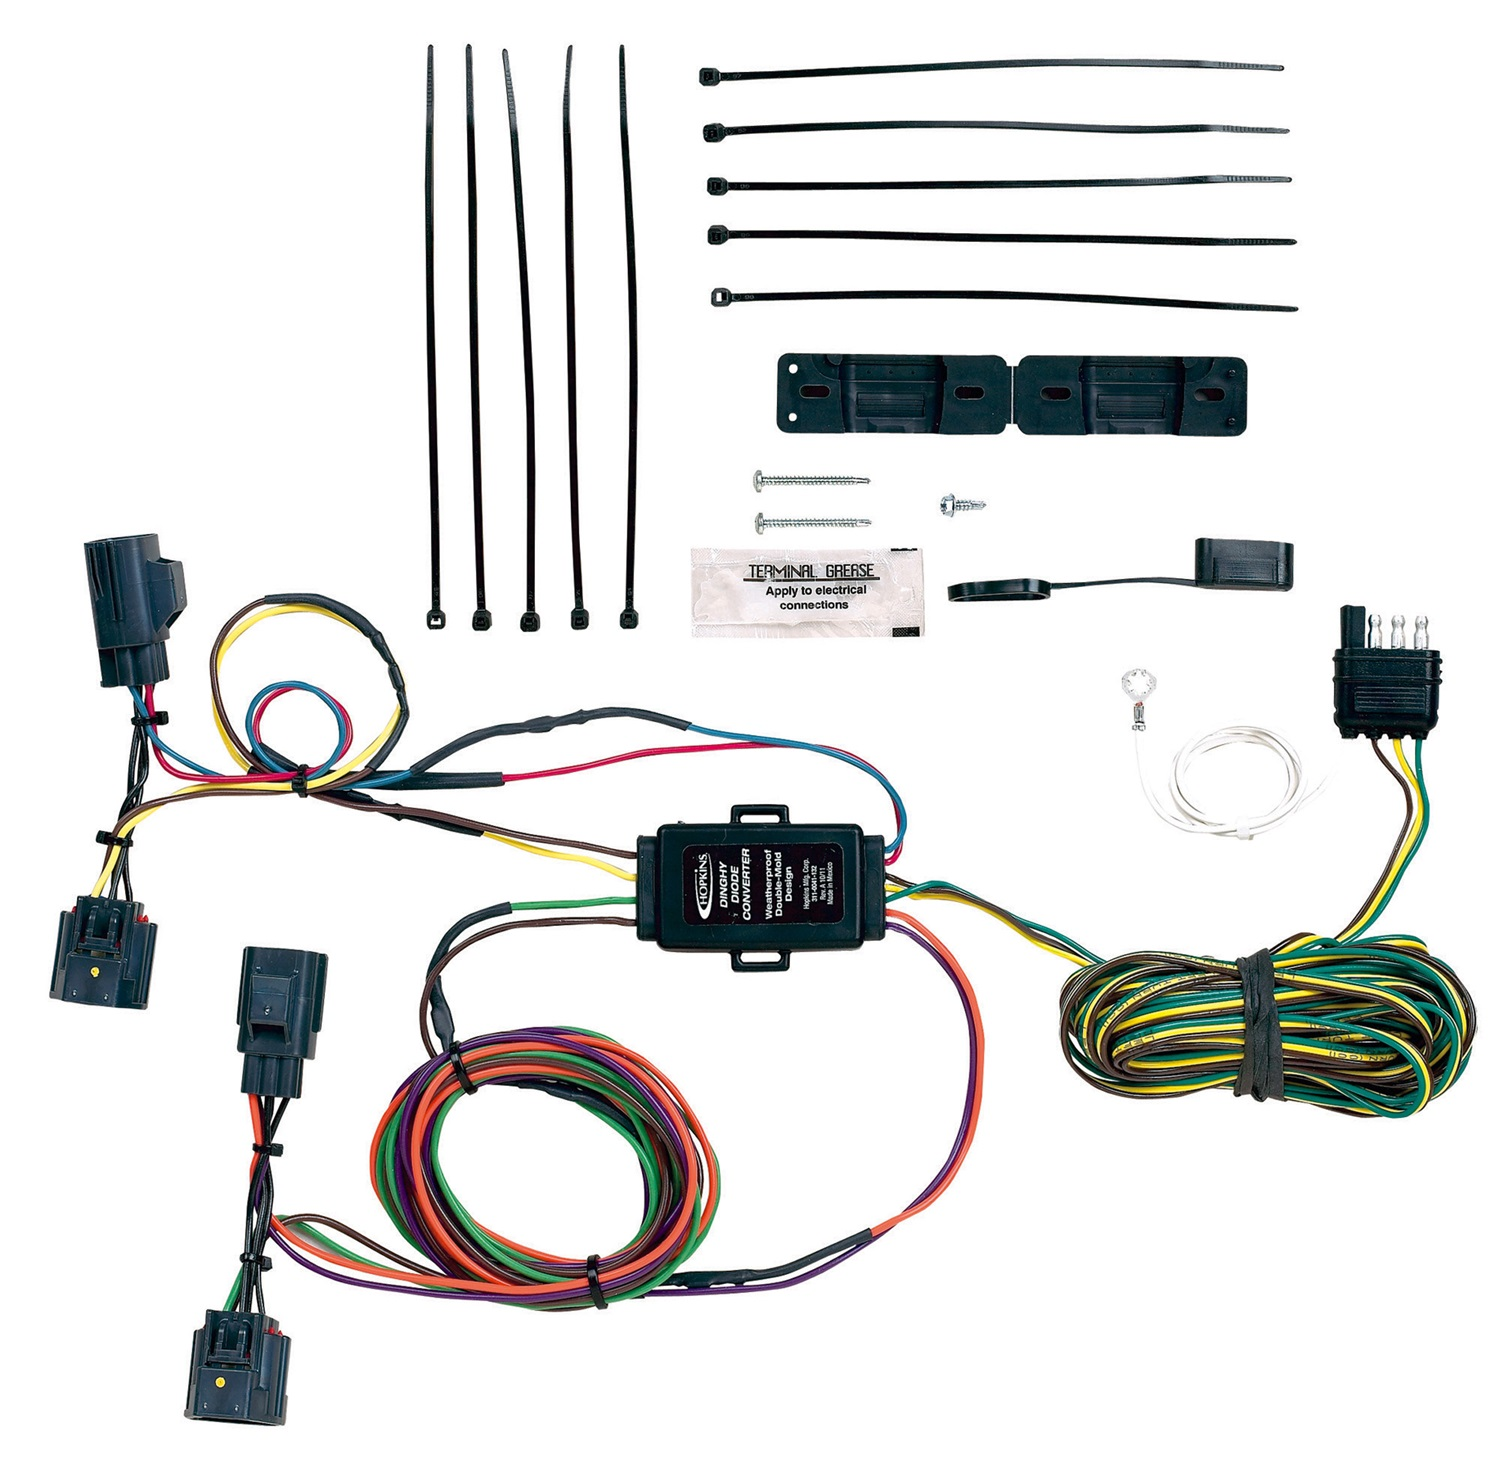 Hopkins Towing Solution 56204 Plug-In Simple Vehicle To Trailer Wiring Harness